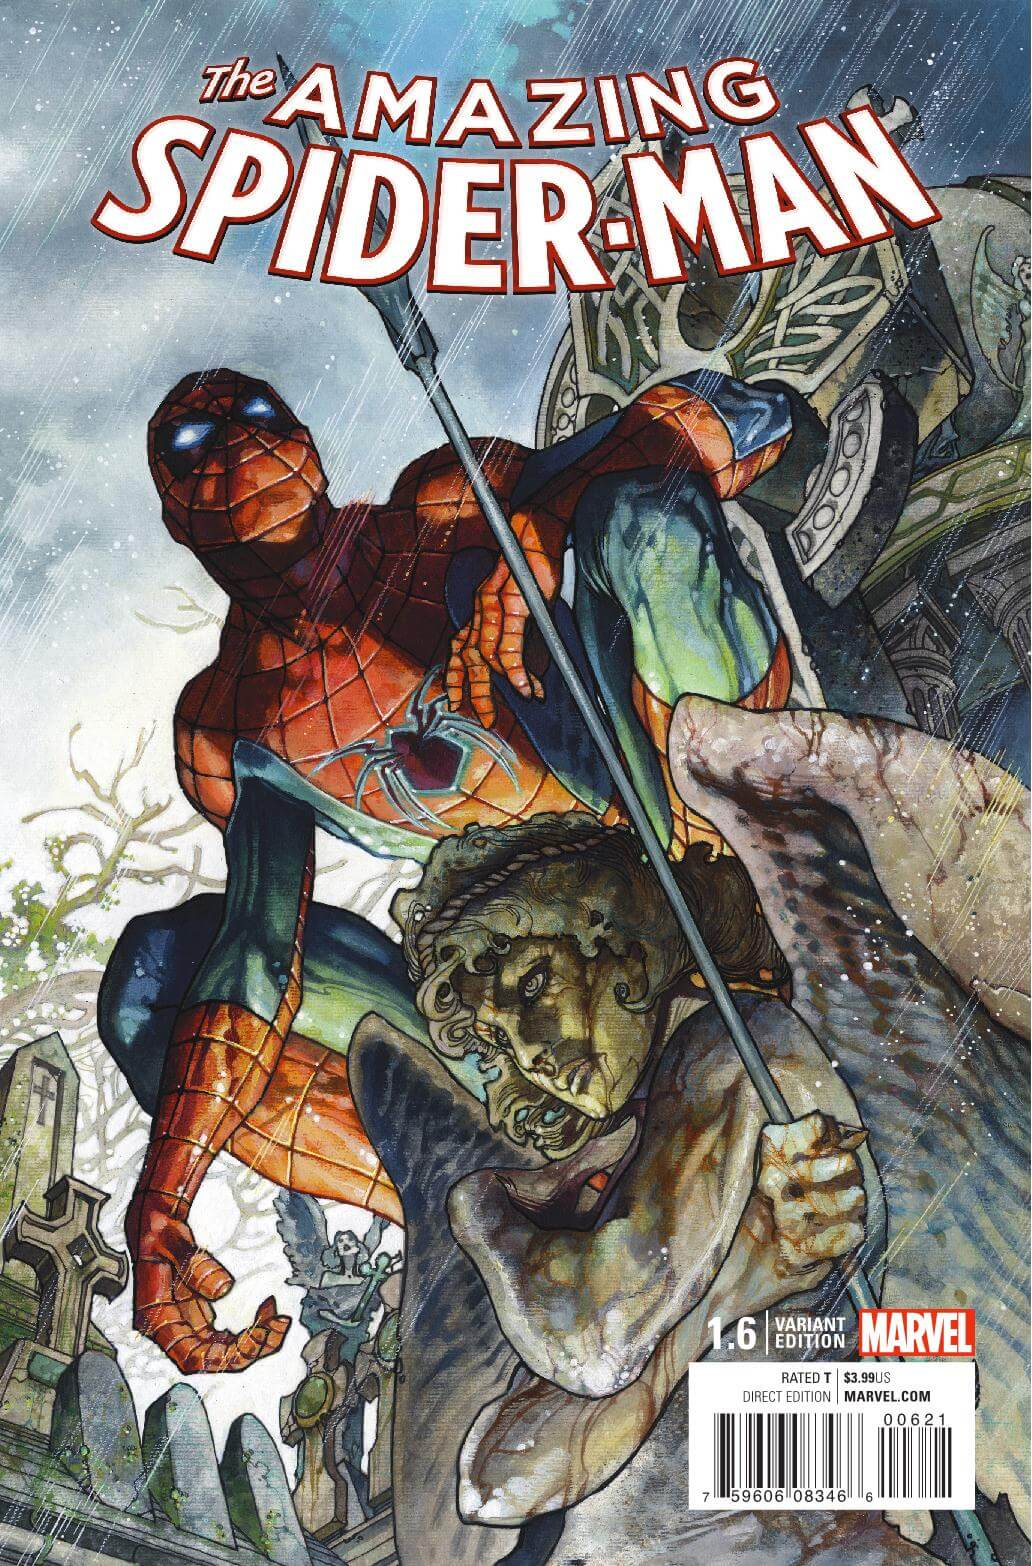 6 Amazing Simple And Smart Everyday Outfits For Men: Preview: The Amazing Spider-Man #1.6